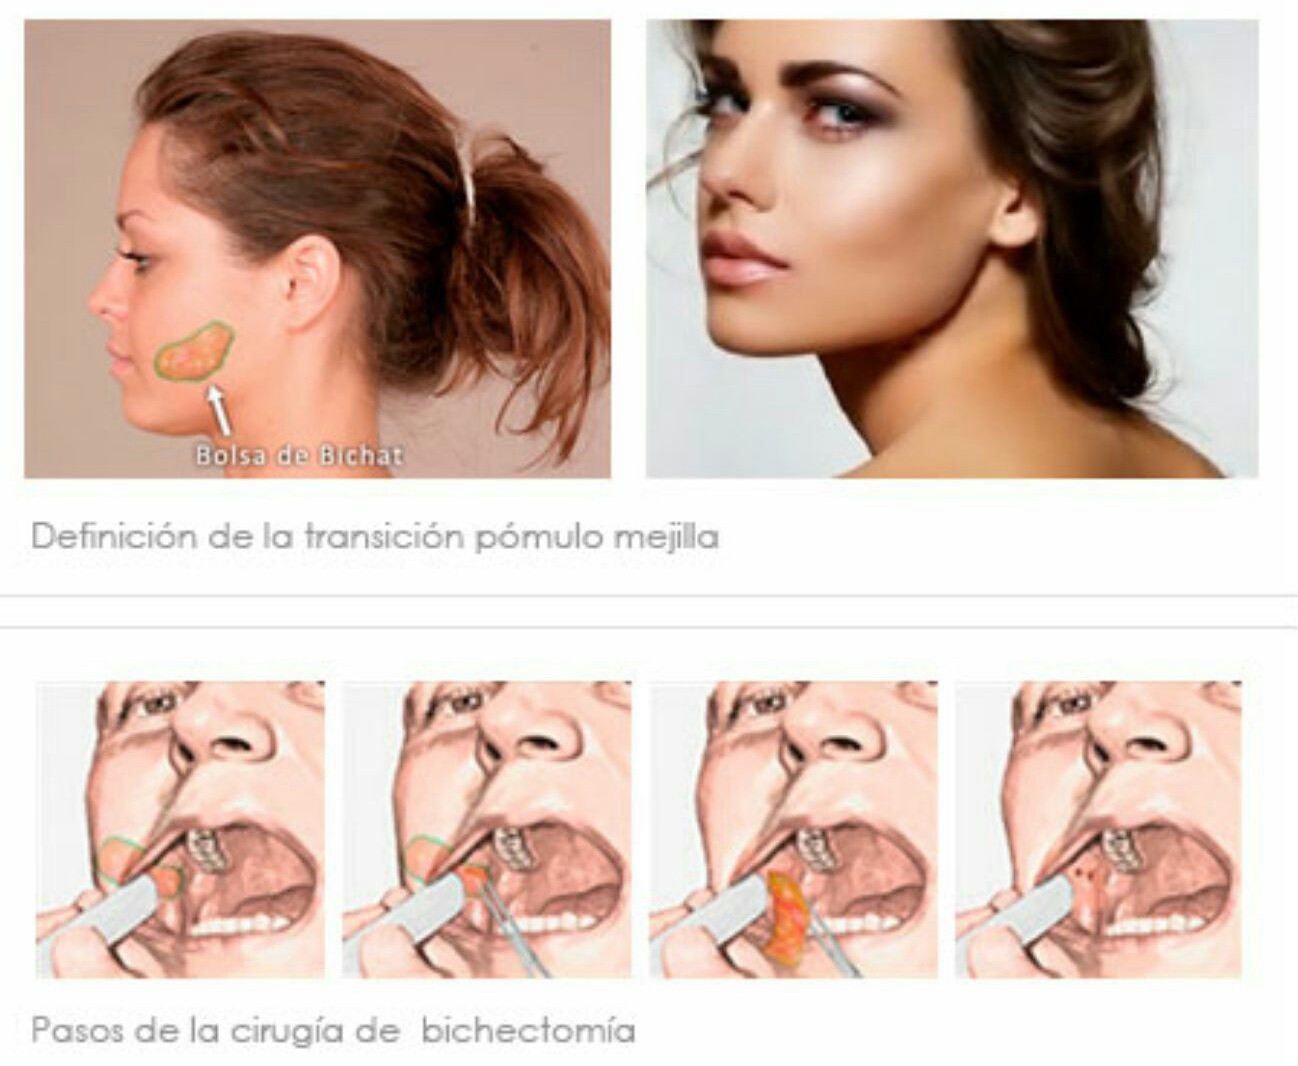 bichectomía dental